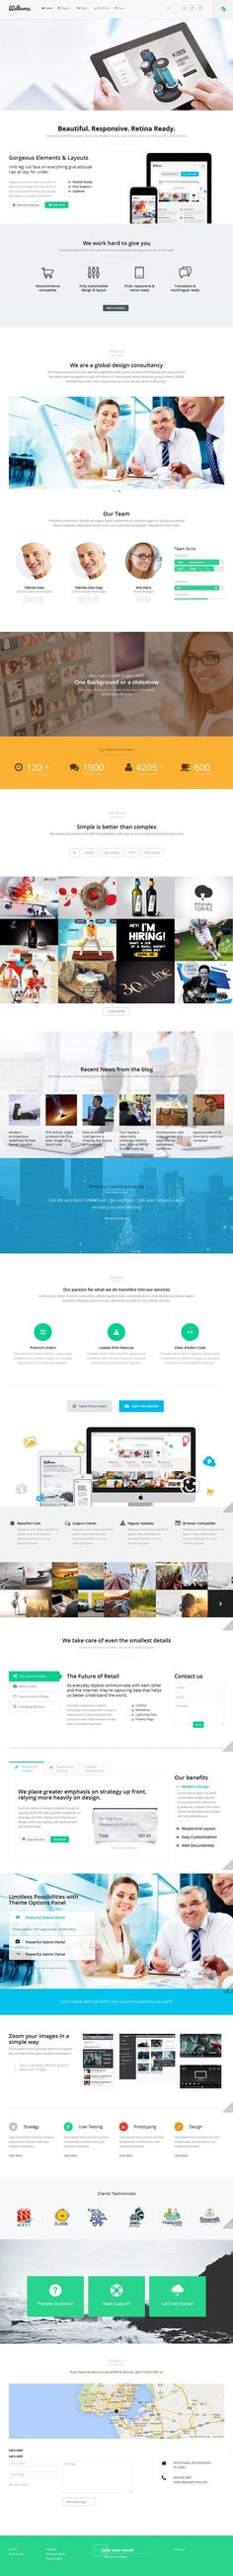 Welkome — One Page Multi-Purpose Theme #responsivewordpressthemes #flatdesign #premiumwpthemes #templates